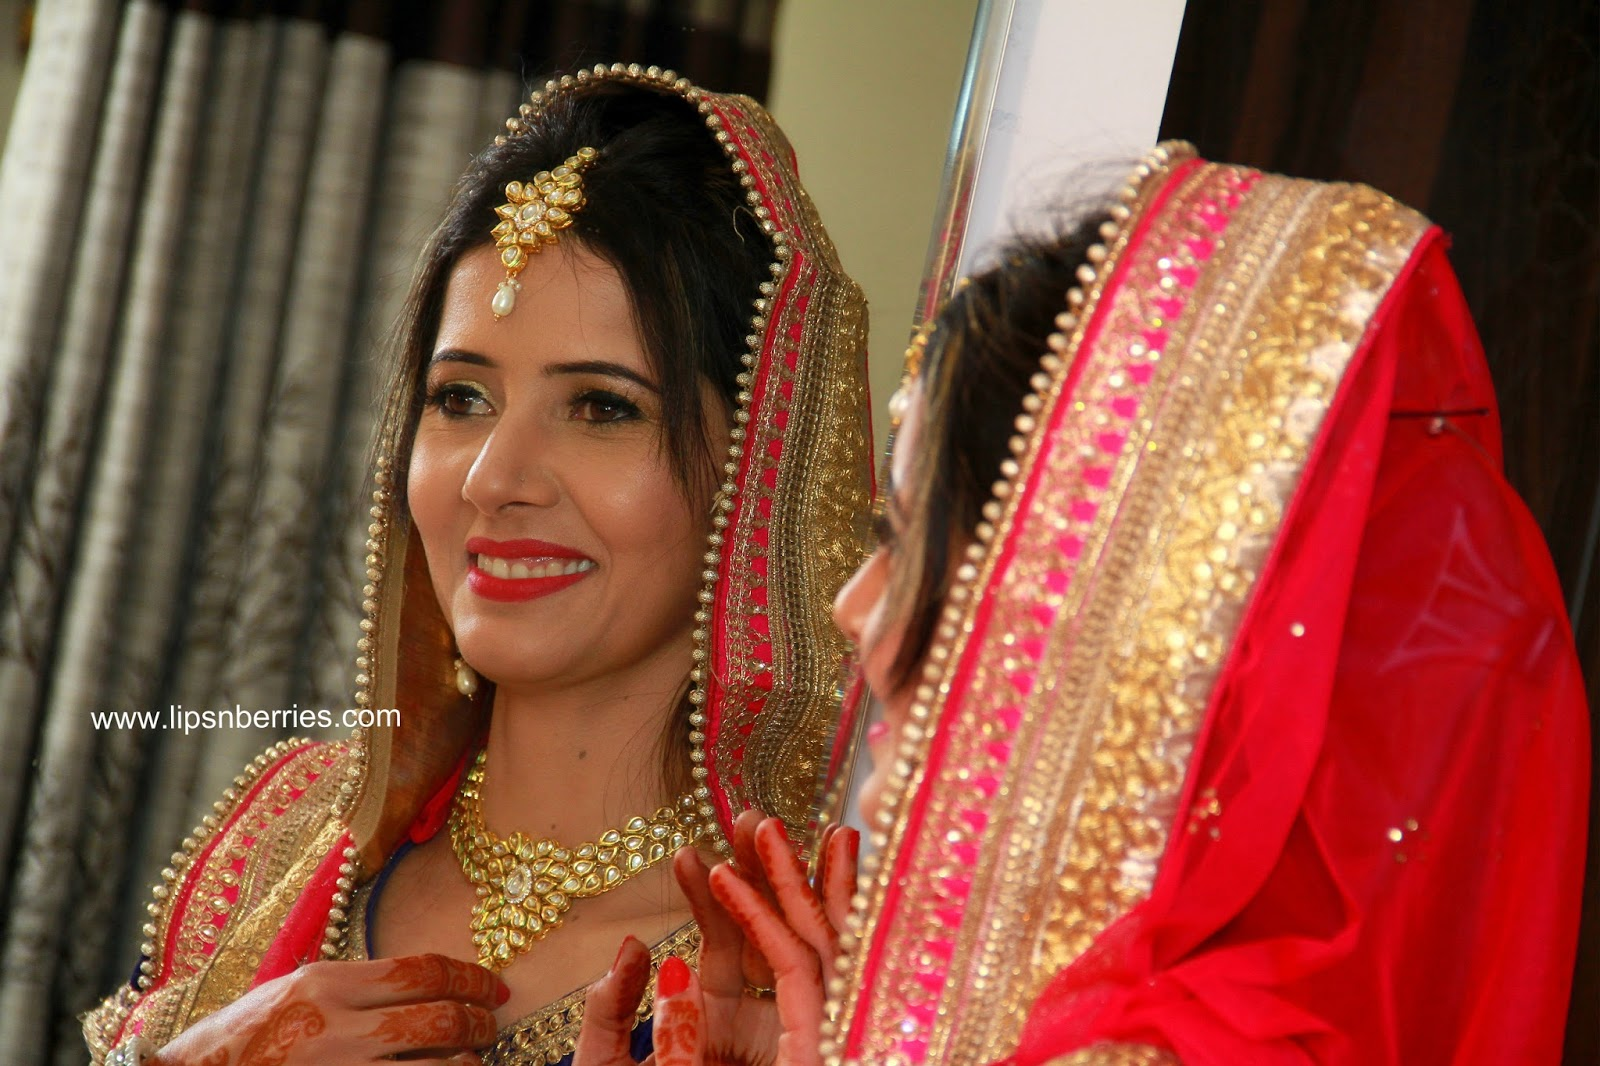 Indian Bridal Makeup- My first ever!   LIPS n BERRIES!